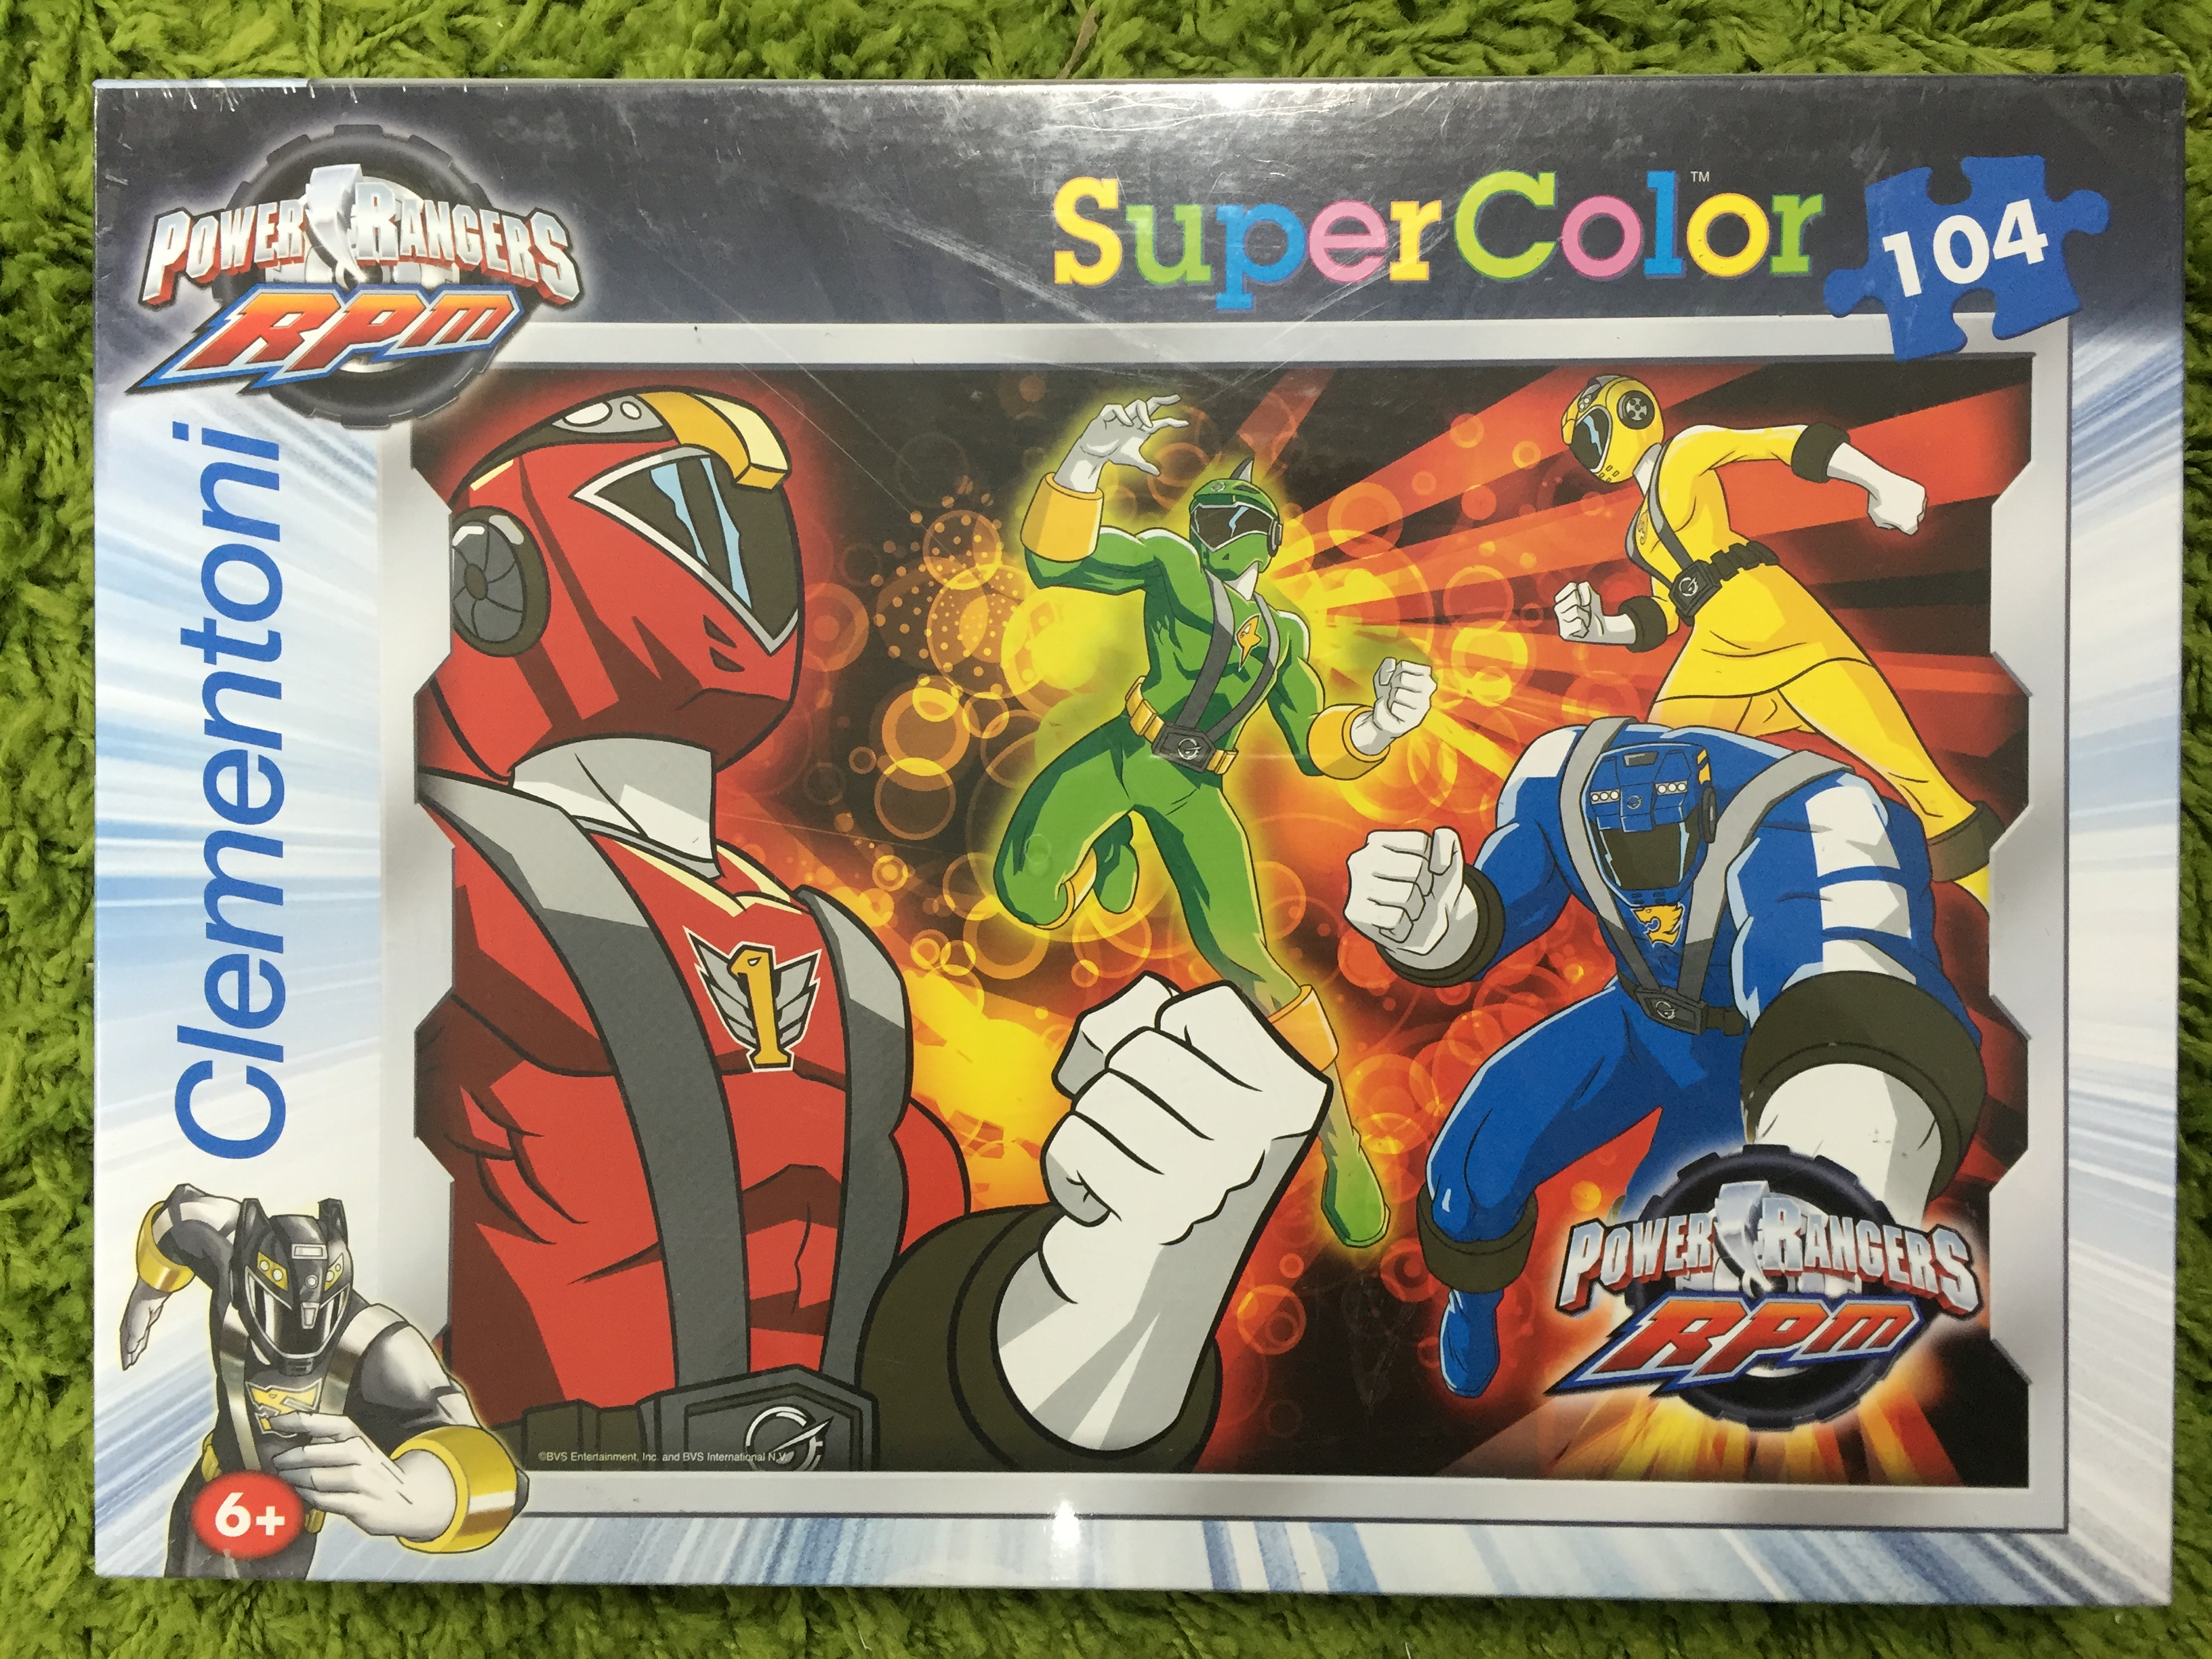 Puzzle 104db-os Power Rangers RPM kirakó